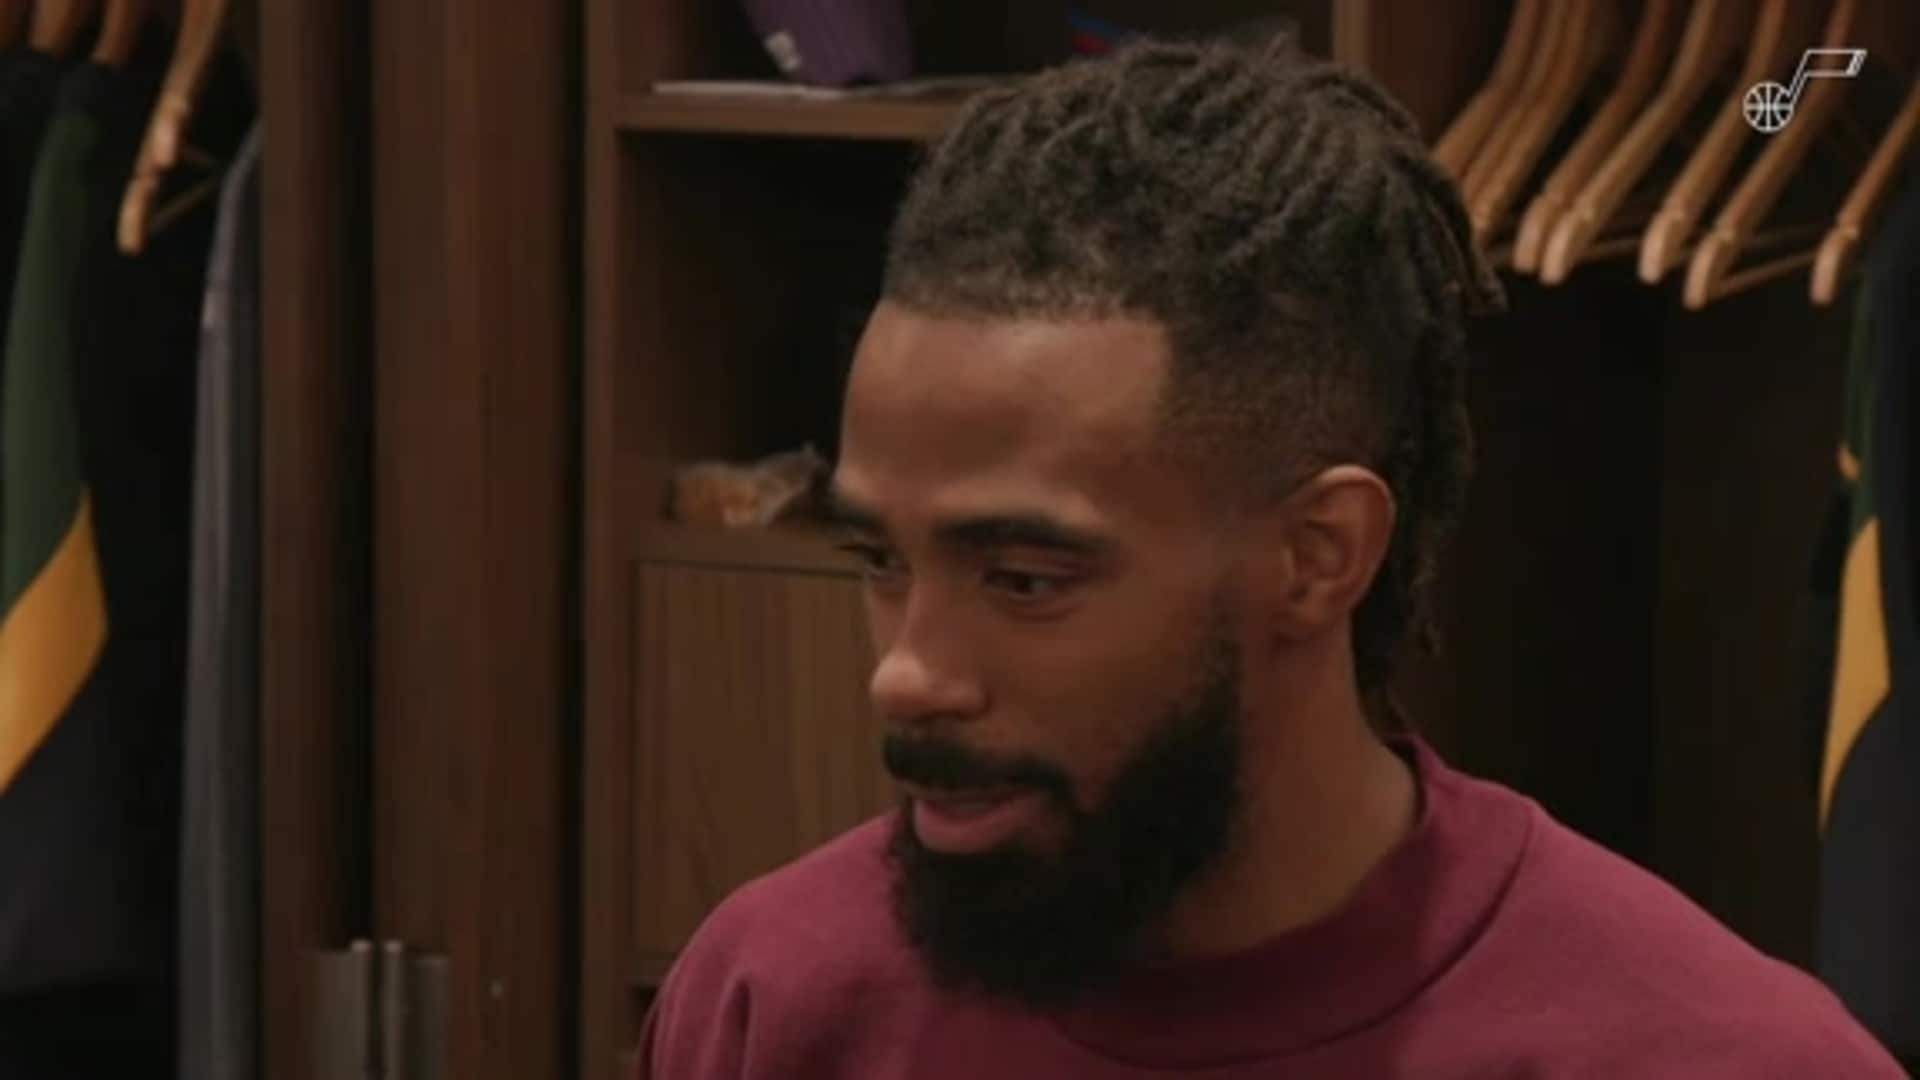 Postgame Interviews, 11.8 — Mike Conley